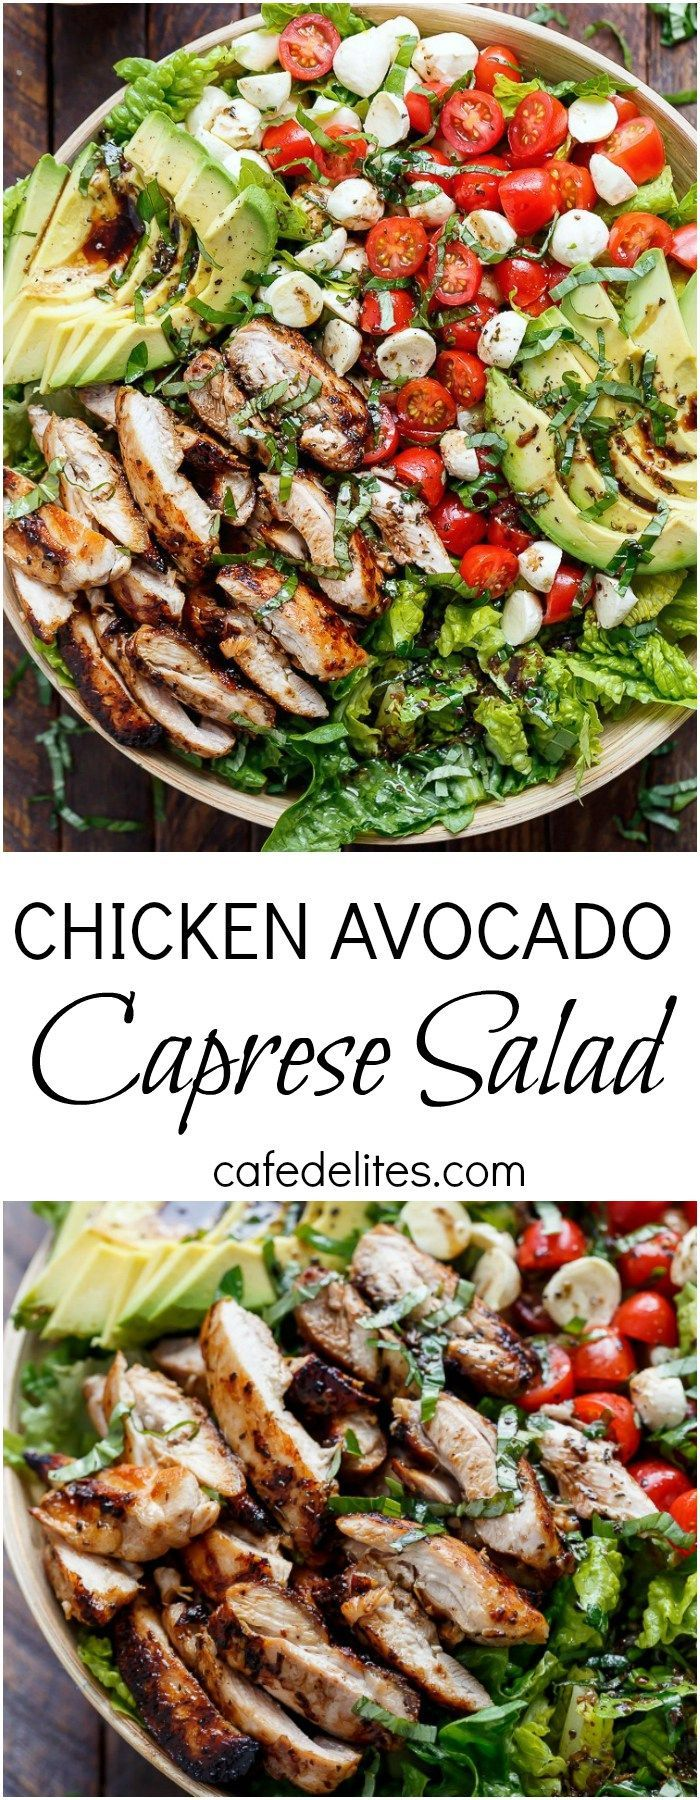 Balsamic Chicken Avocado Caprese Salad is a quick and easy meal in a salad drizzled with a balsamic dressing that doubles as a marinade.